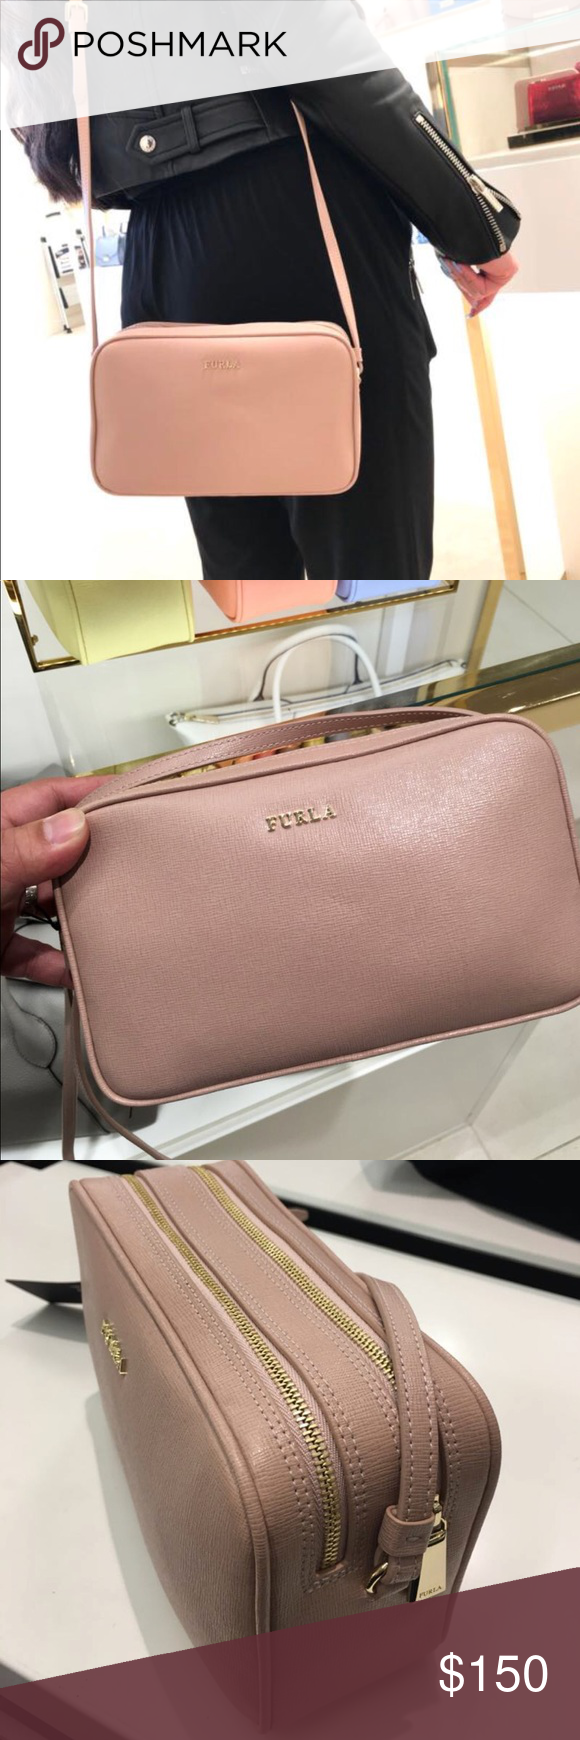 new style best authentic sports shoes Furla Lilli Double Zip Crossbody Functional leather ...